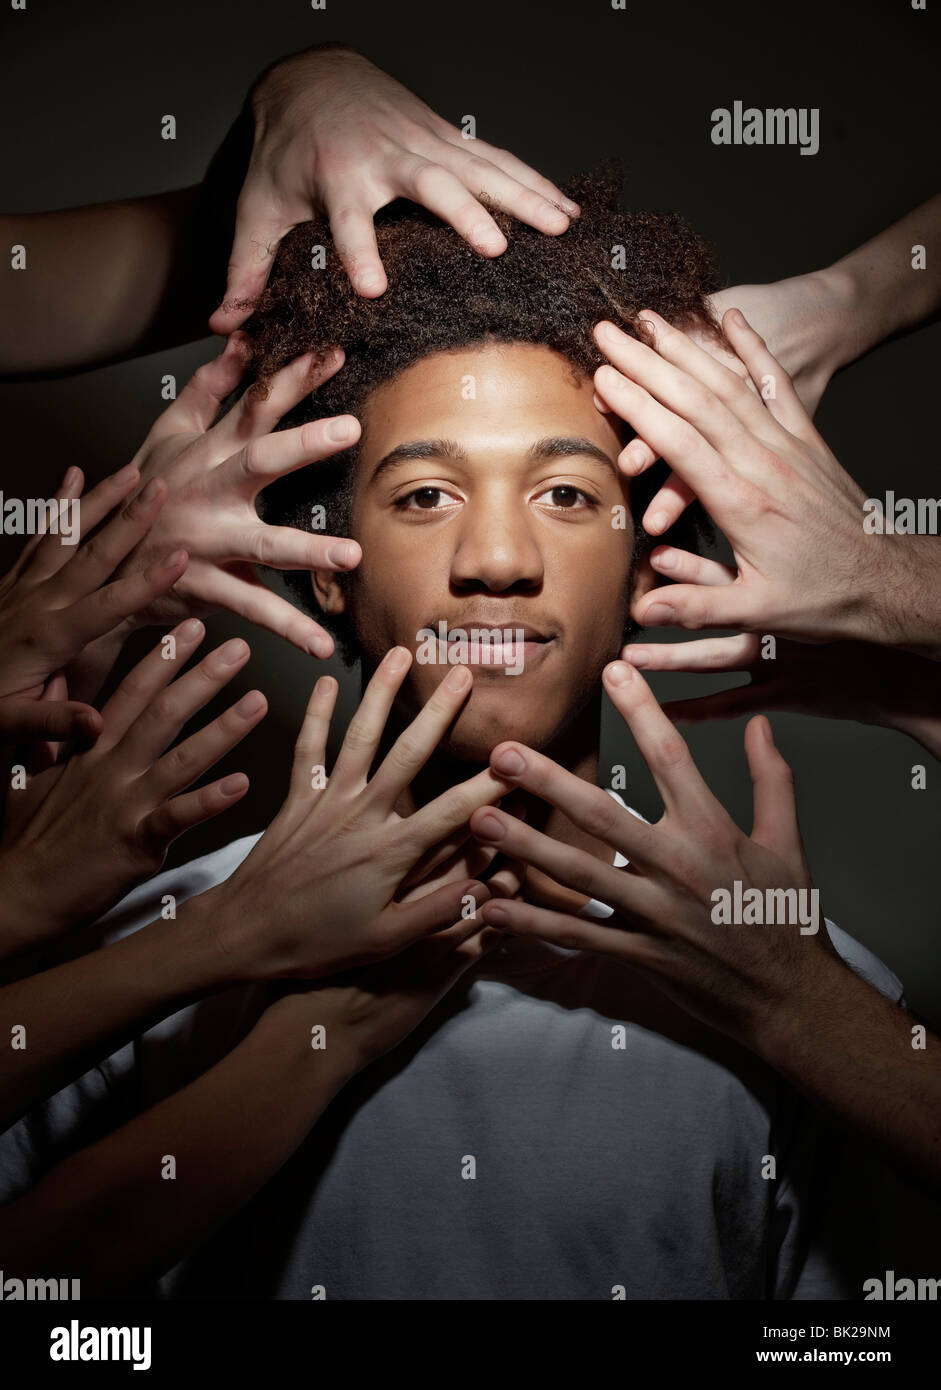 Black male surrounded by hands - Stock Image